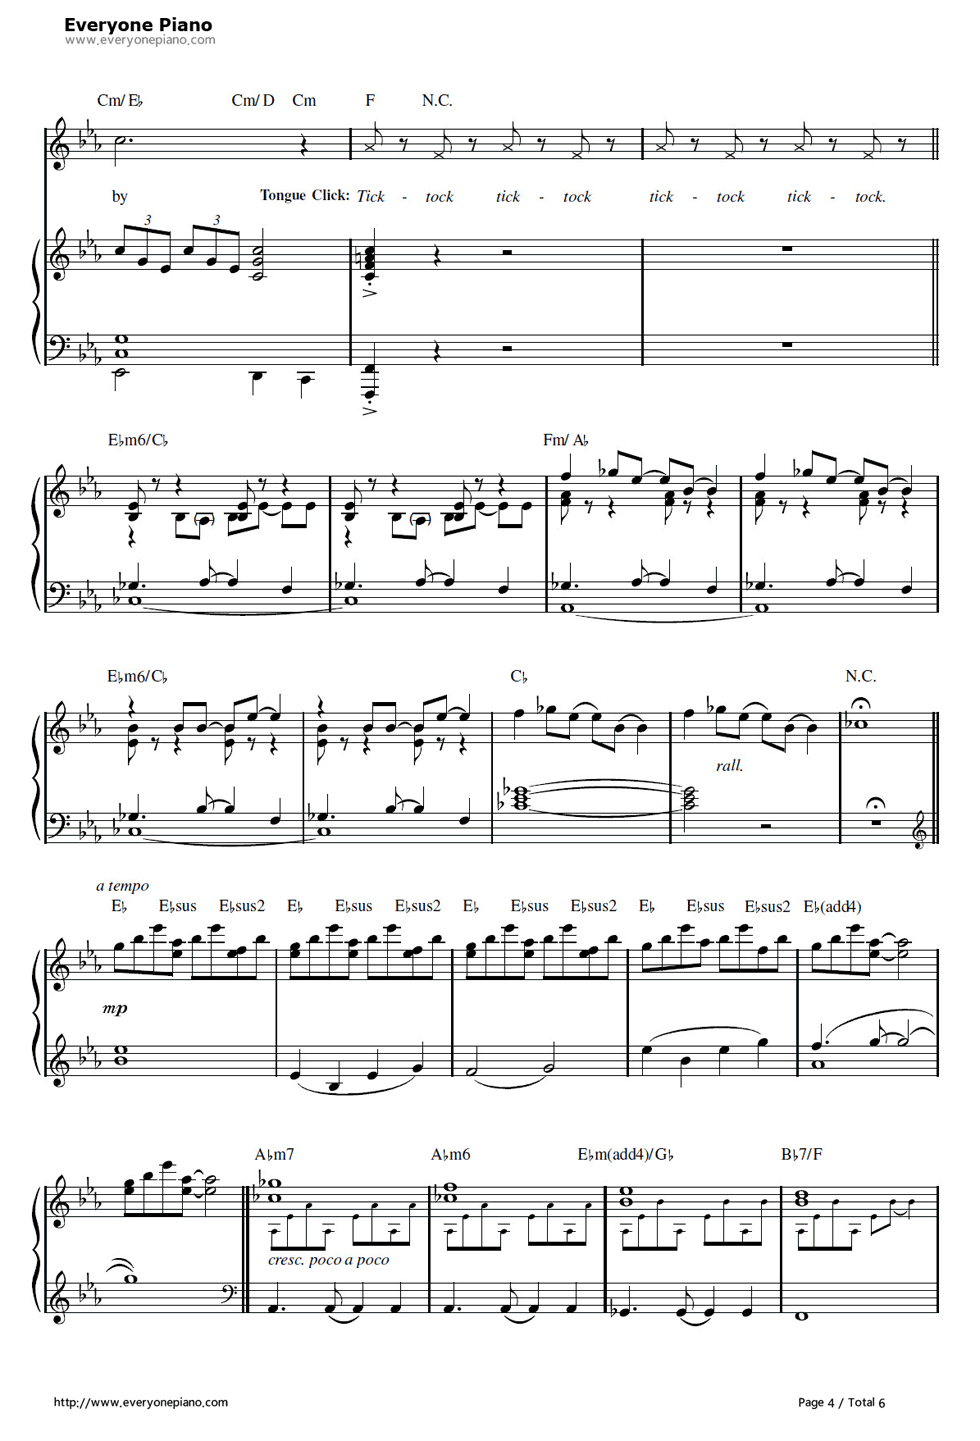 Free Do You Want to Build a Snowman-Frozen OST Sheet Music ...